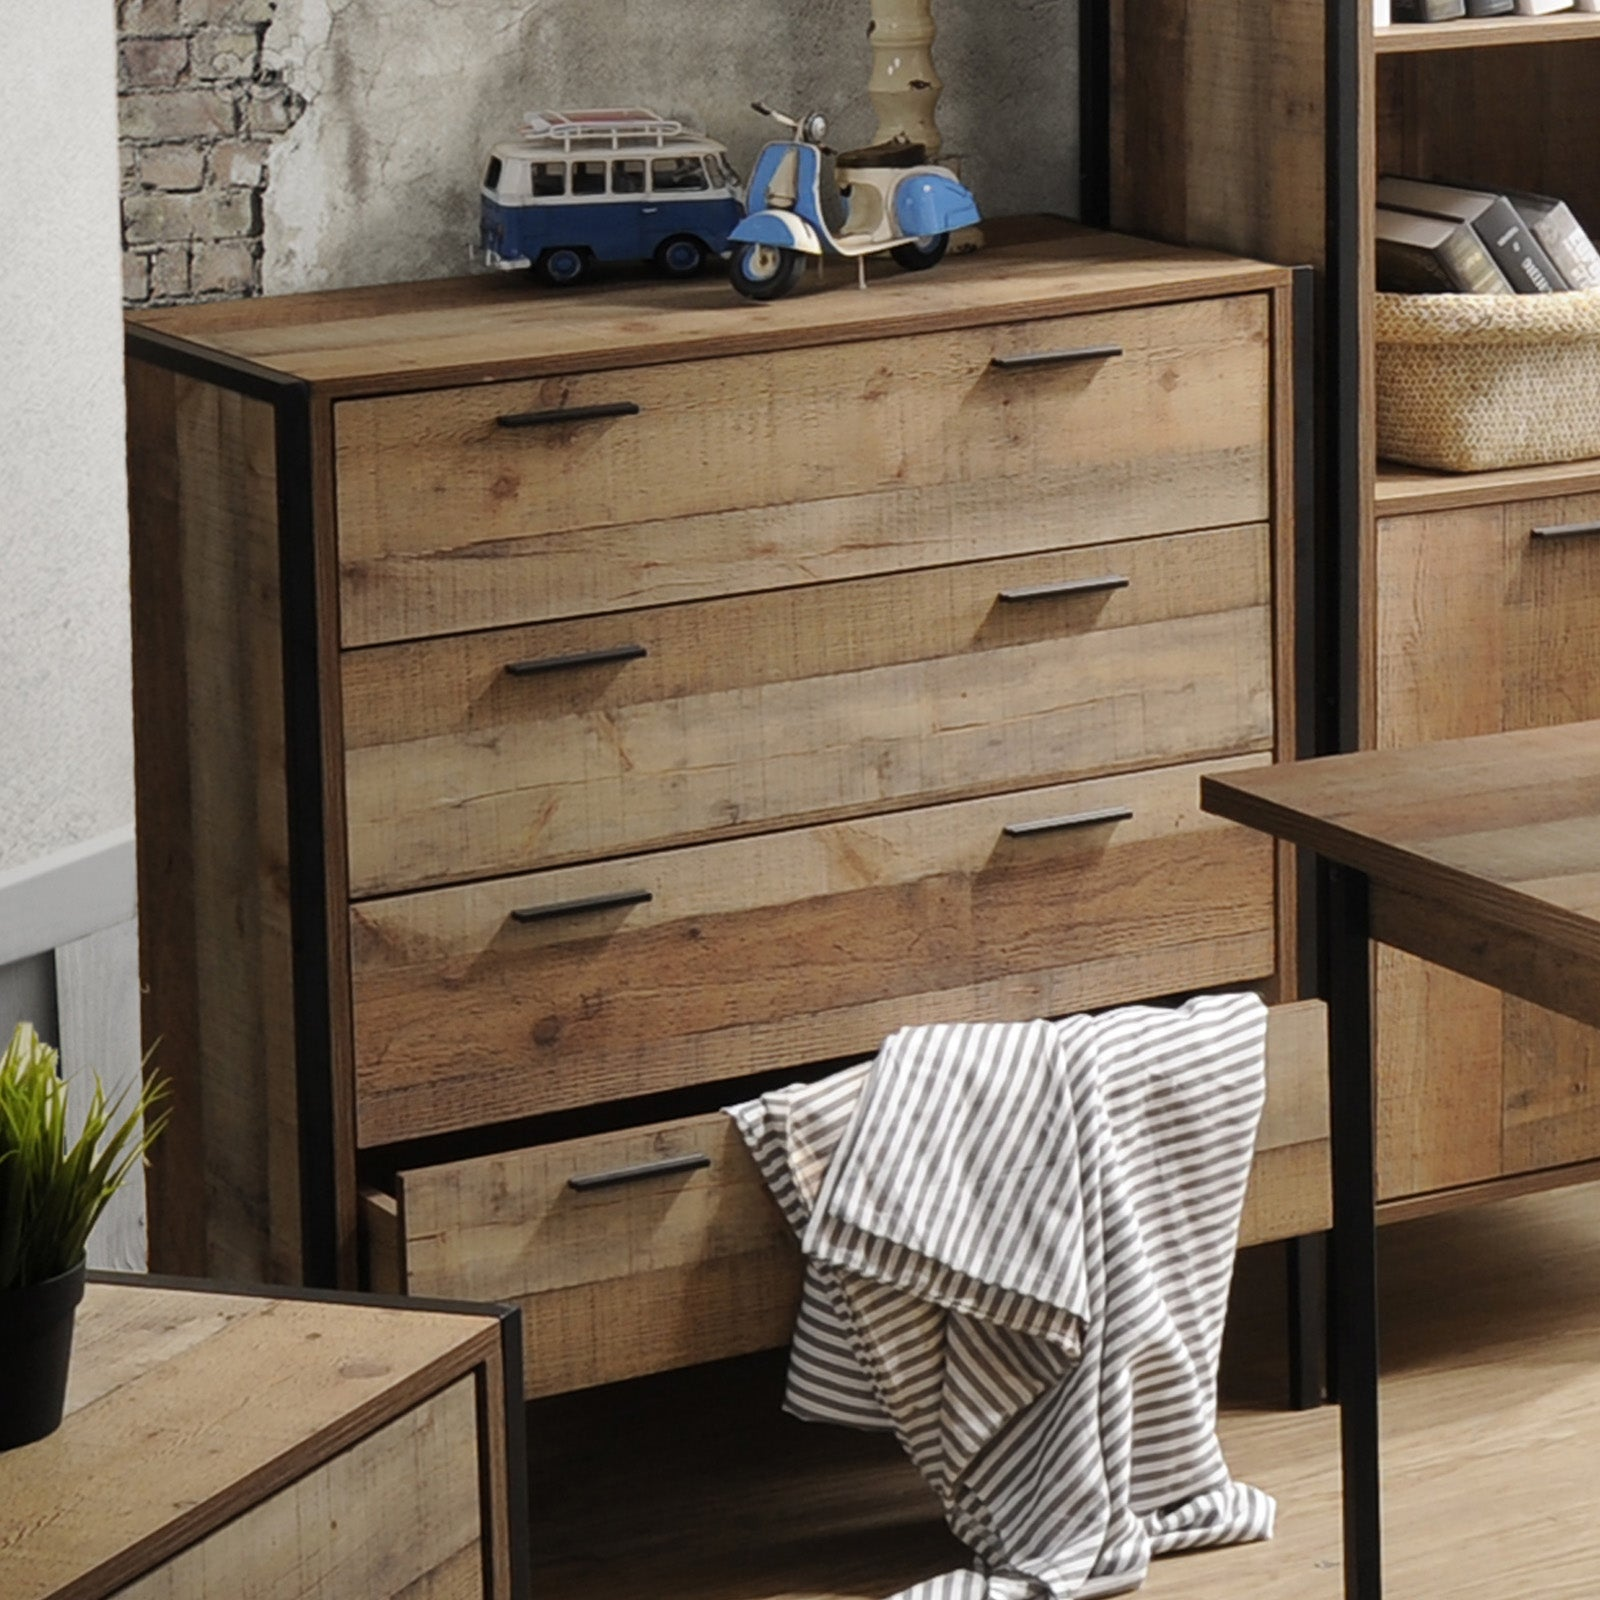 Tallboy 4 Storage Drawers Natural Wood Like Particle board Construction in Oak Colour